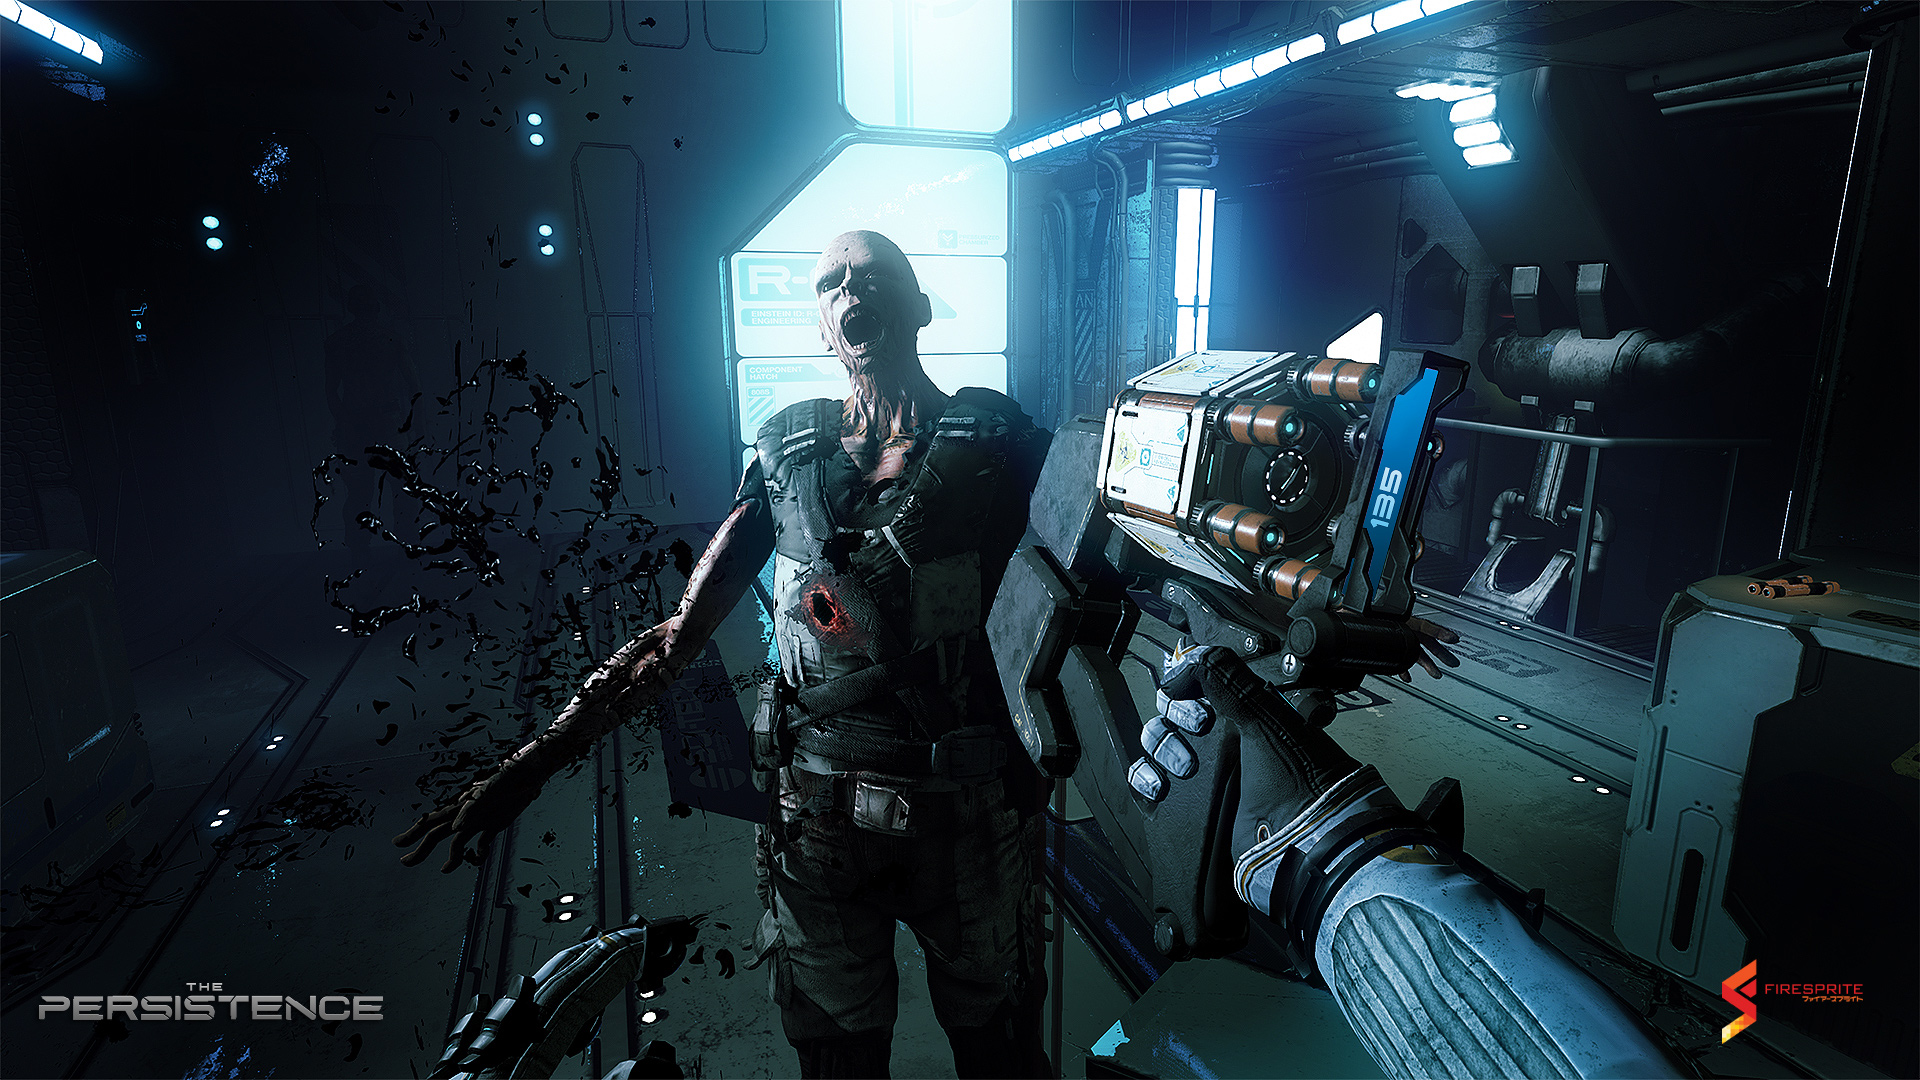 The Persistence Looks Like The Next Promising Playstation Vr Horror Game